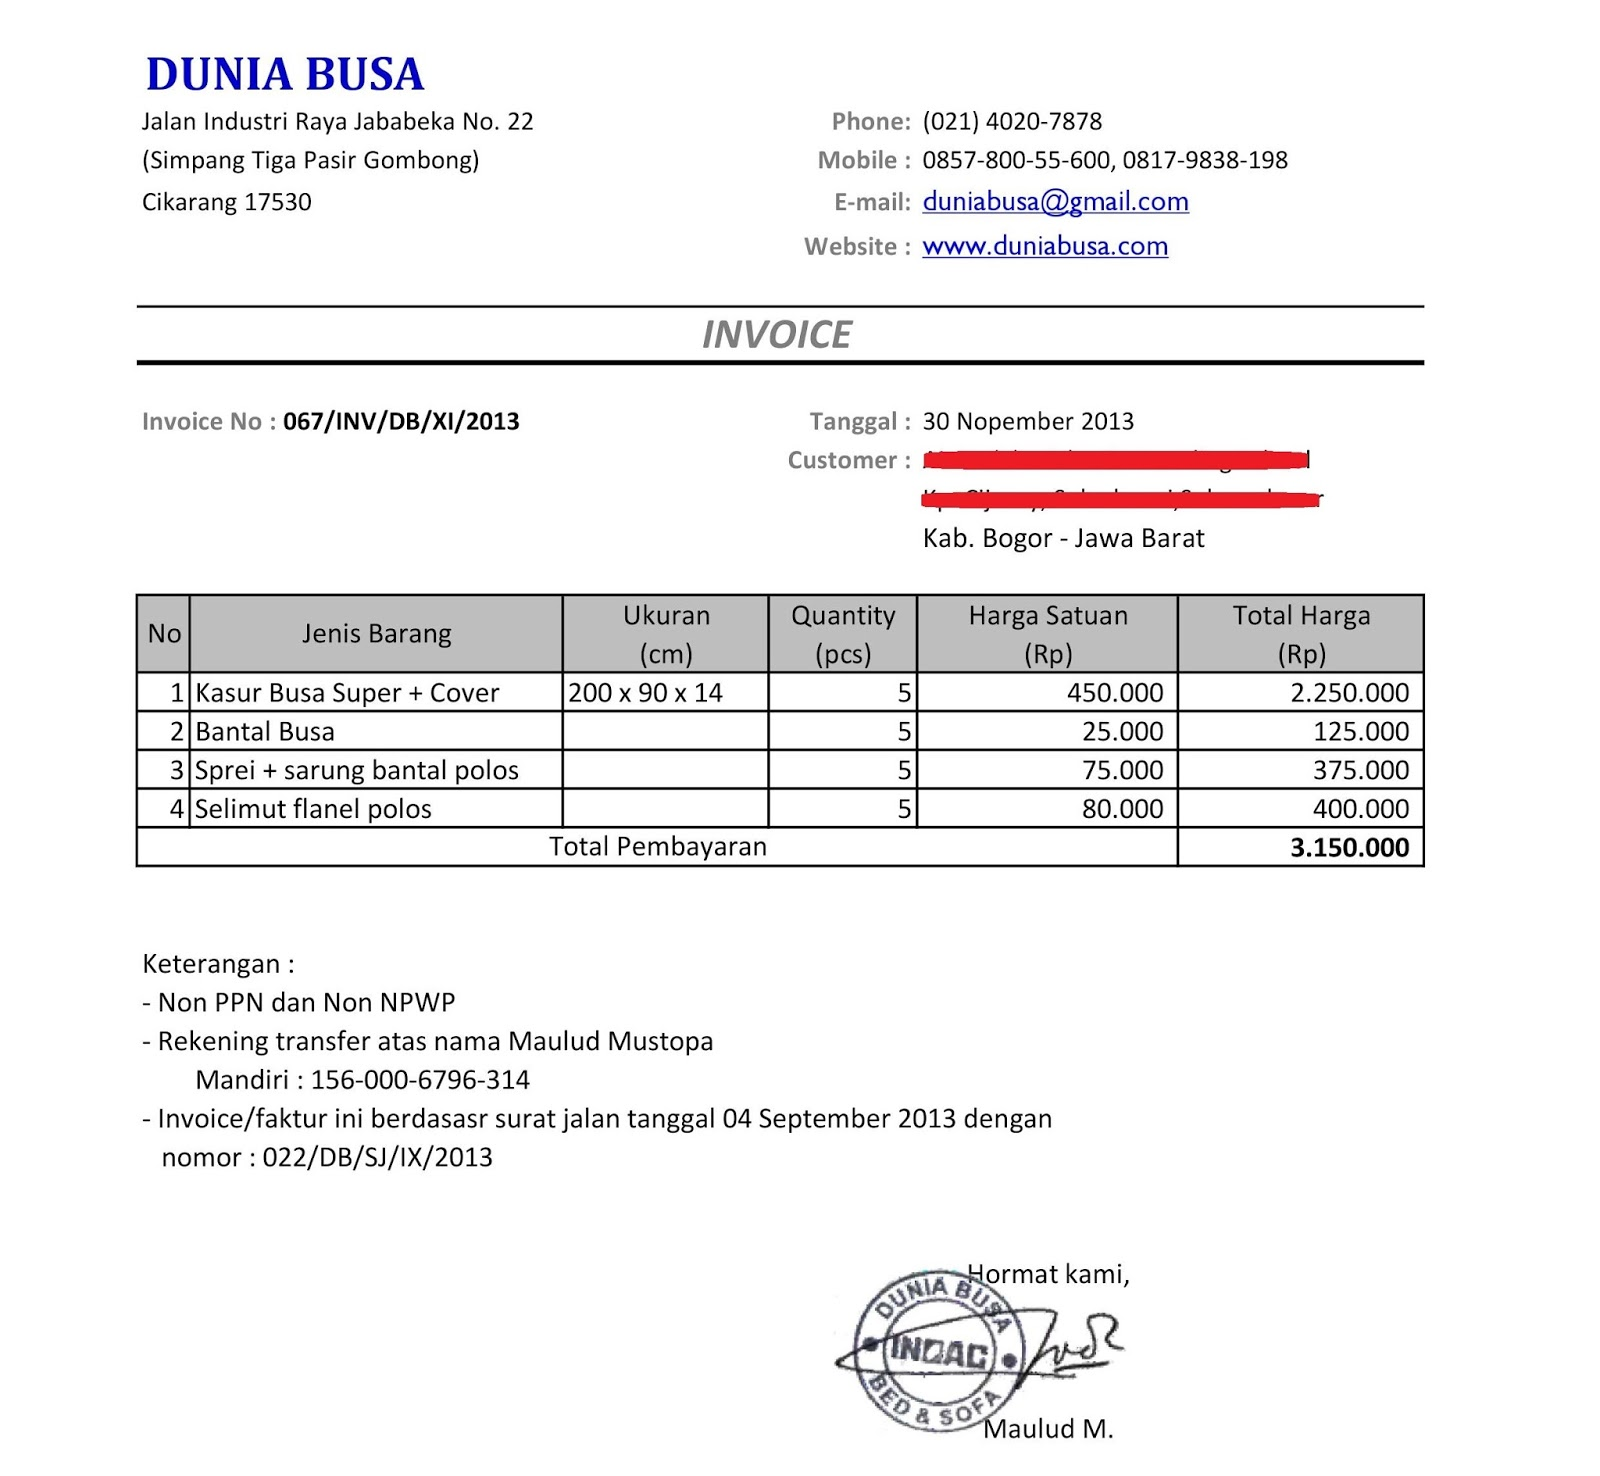 Centralasianshepherdus  Nice Free Invoice Online  Create Invoice Online  Invoice Template  With Fascinating Contoh Format Invoice Atau Surat Tagihan  Brankas Arsip  Free Invoice Online With Lovely Tax Invoice Template Free Also Invoice Validation In Addition Ato Tax Invoice Requirements And Builder Invoice Template As Well As Invoiceing Software Additionally Citylink Late Toll Invoice From Sklepco With Centralasianshepherdus  Fascinating Free Invoice Online  Create Invoice Online  Invoice Template  With Lovely Contoh Format Invoice Atau Surat Tagihan  Brankas Arsip  Free Invoice Online And Nice Tax Invoice Template Free Also Invoice Validation In Addition Ato Tax Invoice Requirements From Sklepco